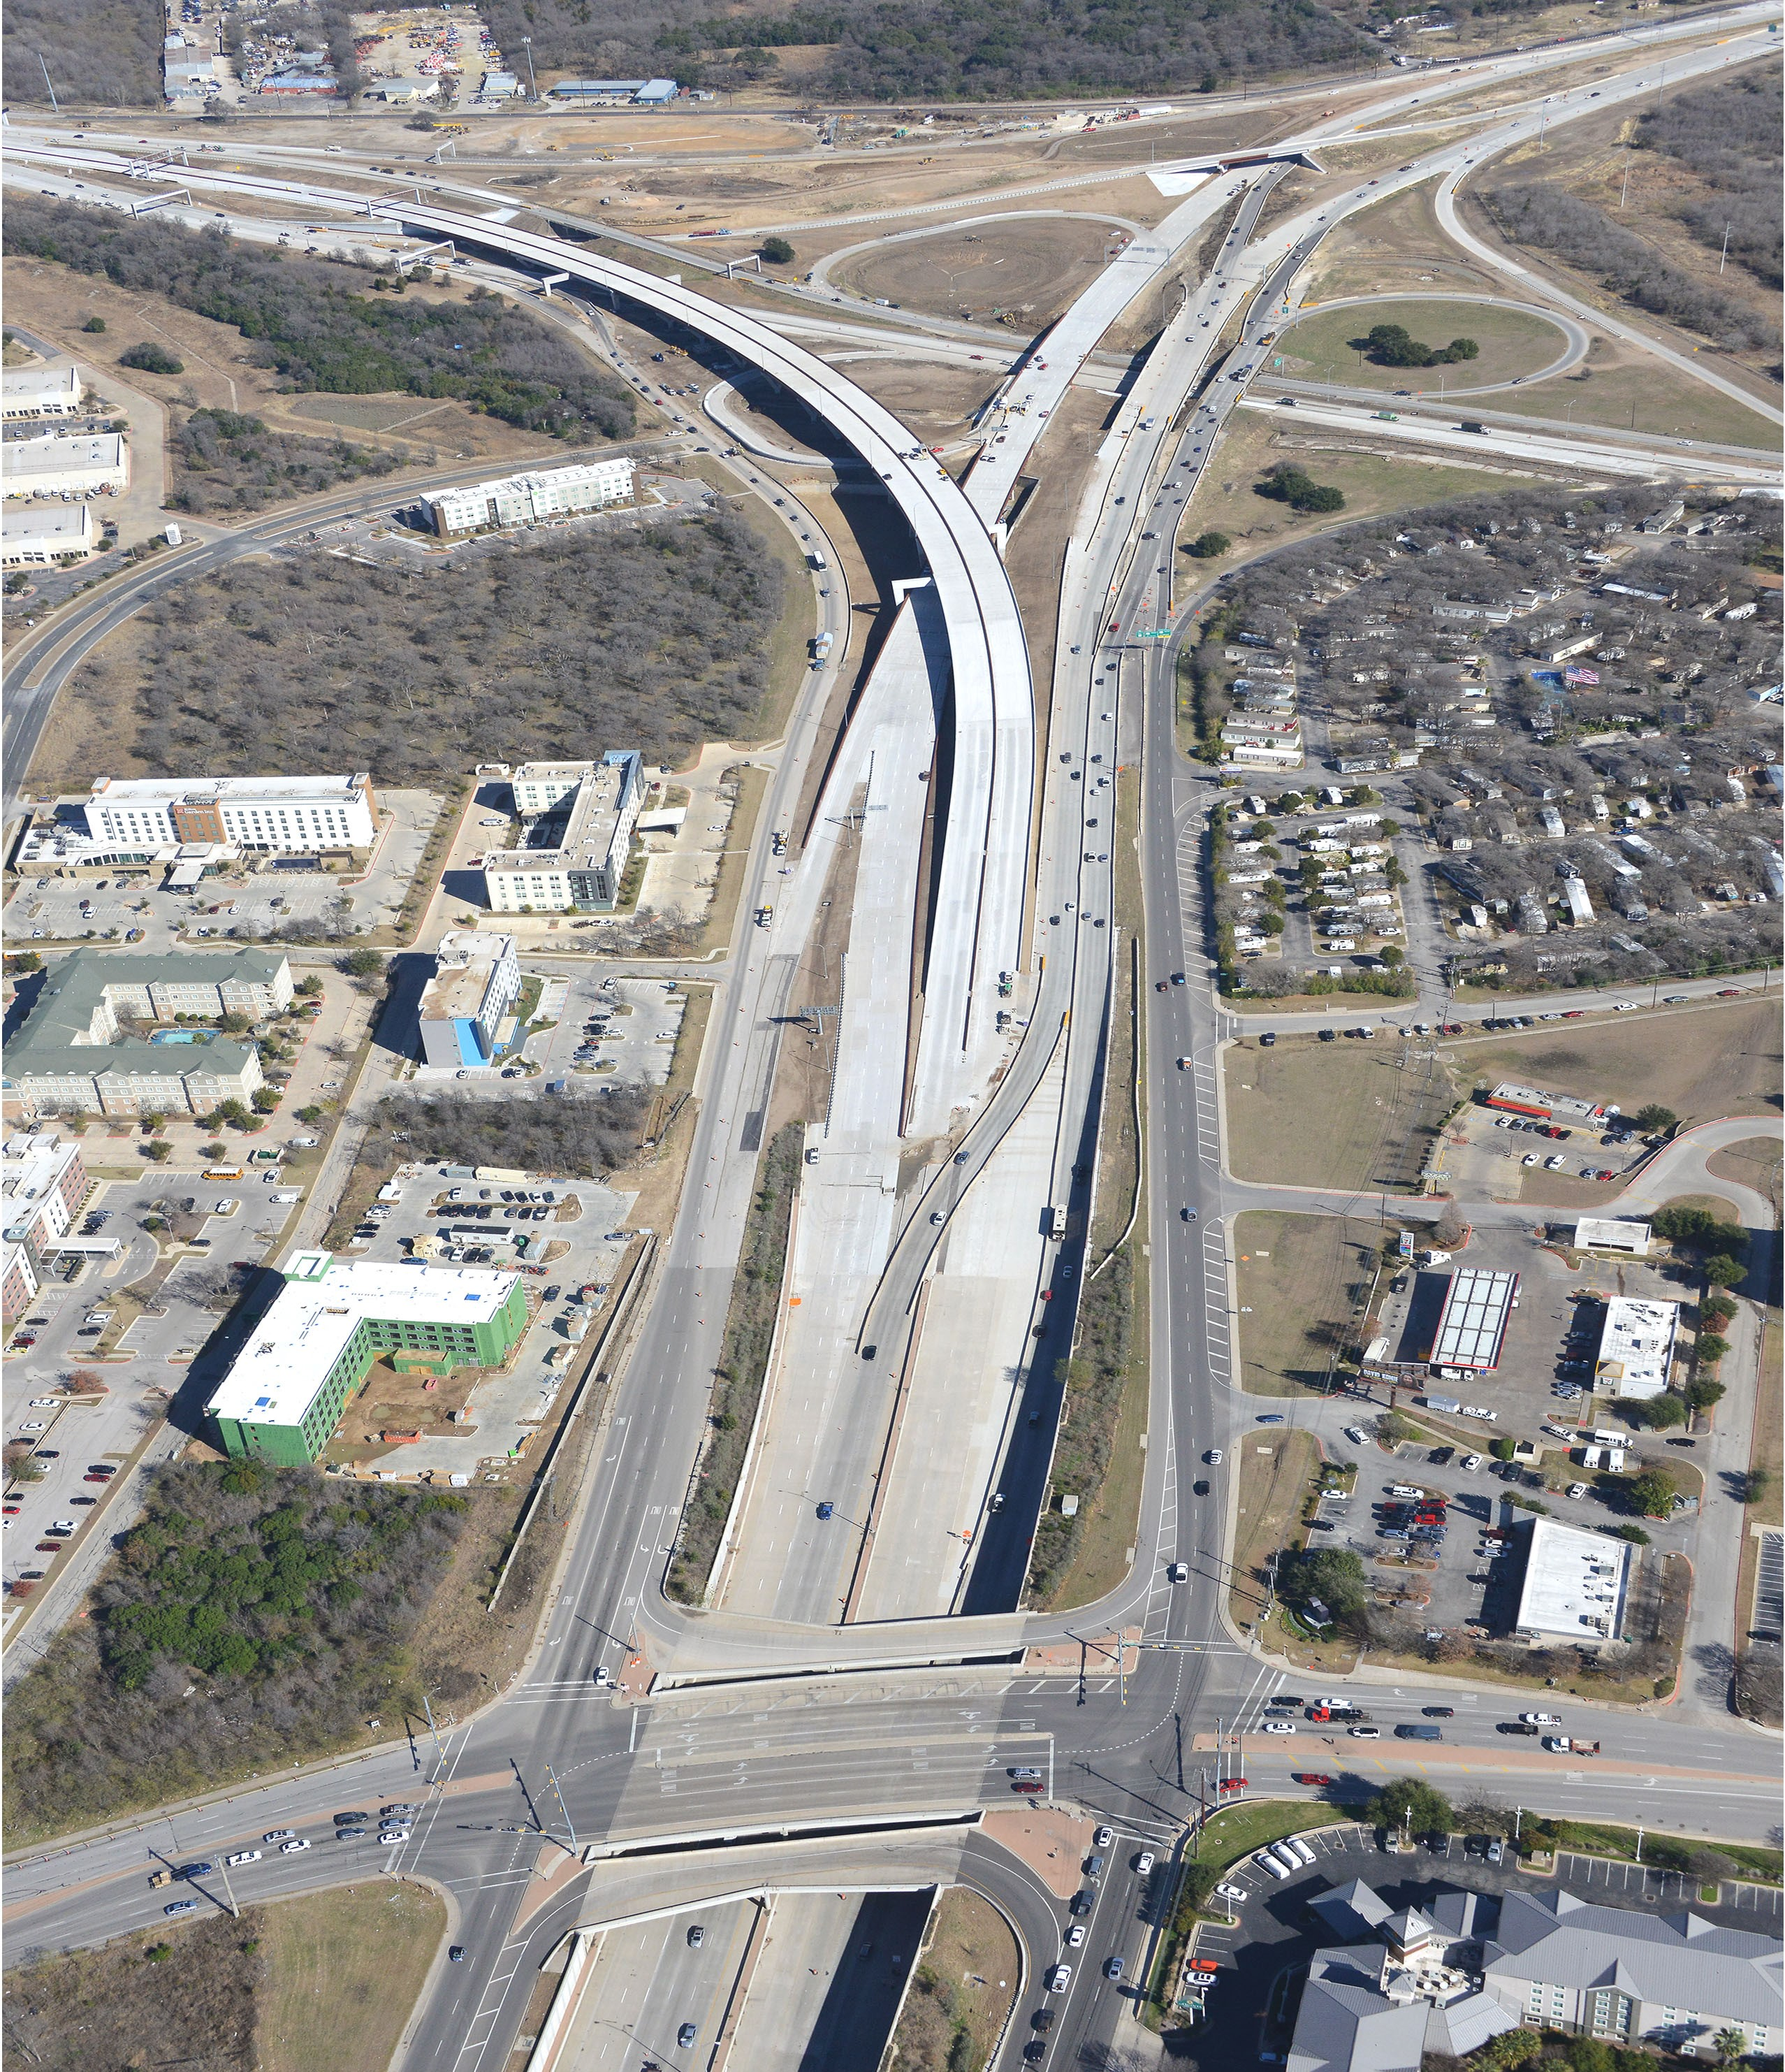 Aerial View of SH 71 at Riverside Drive - Jan. 2021